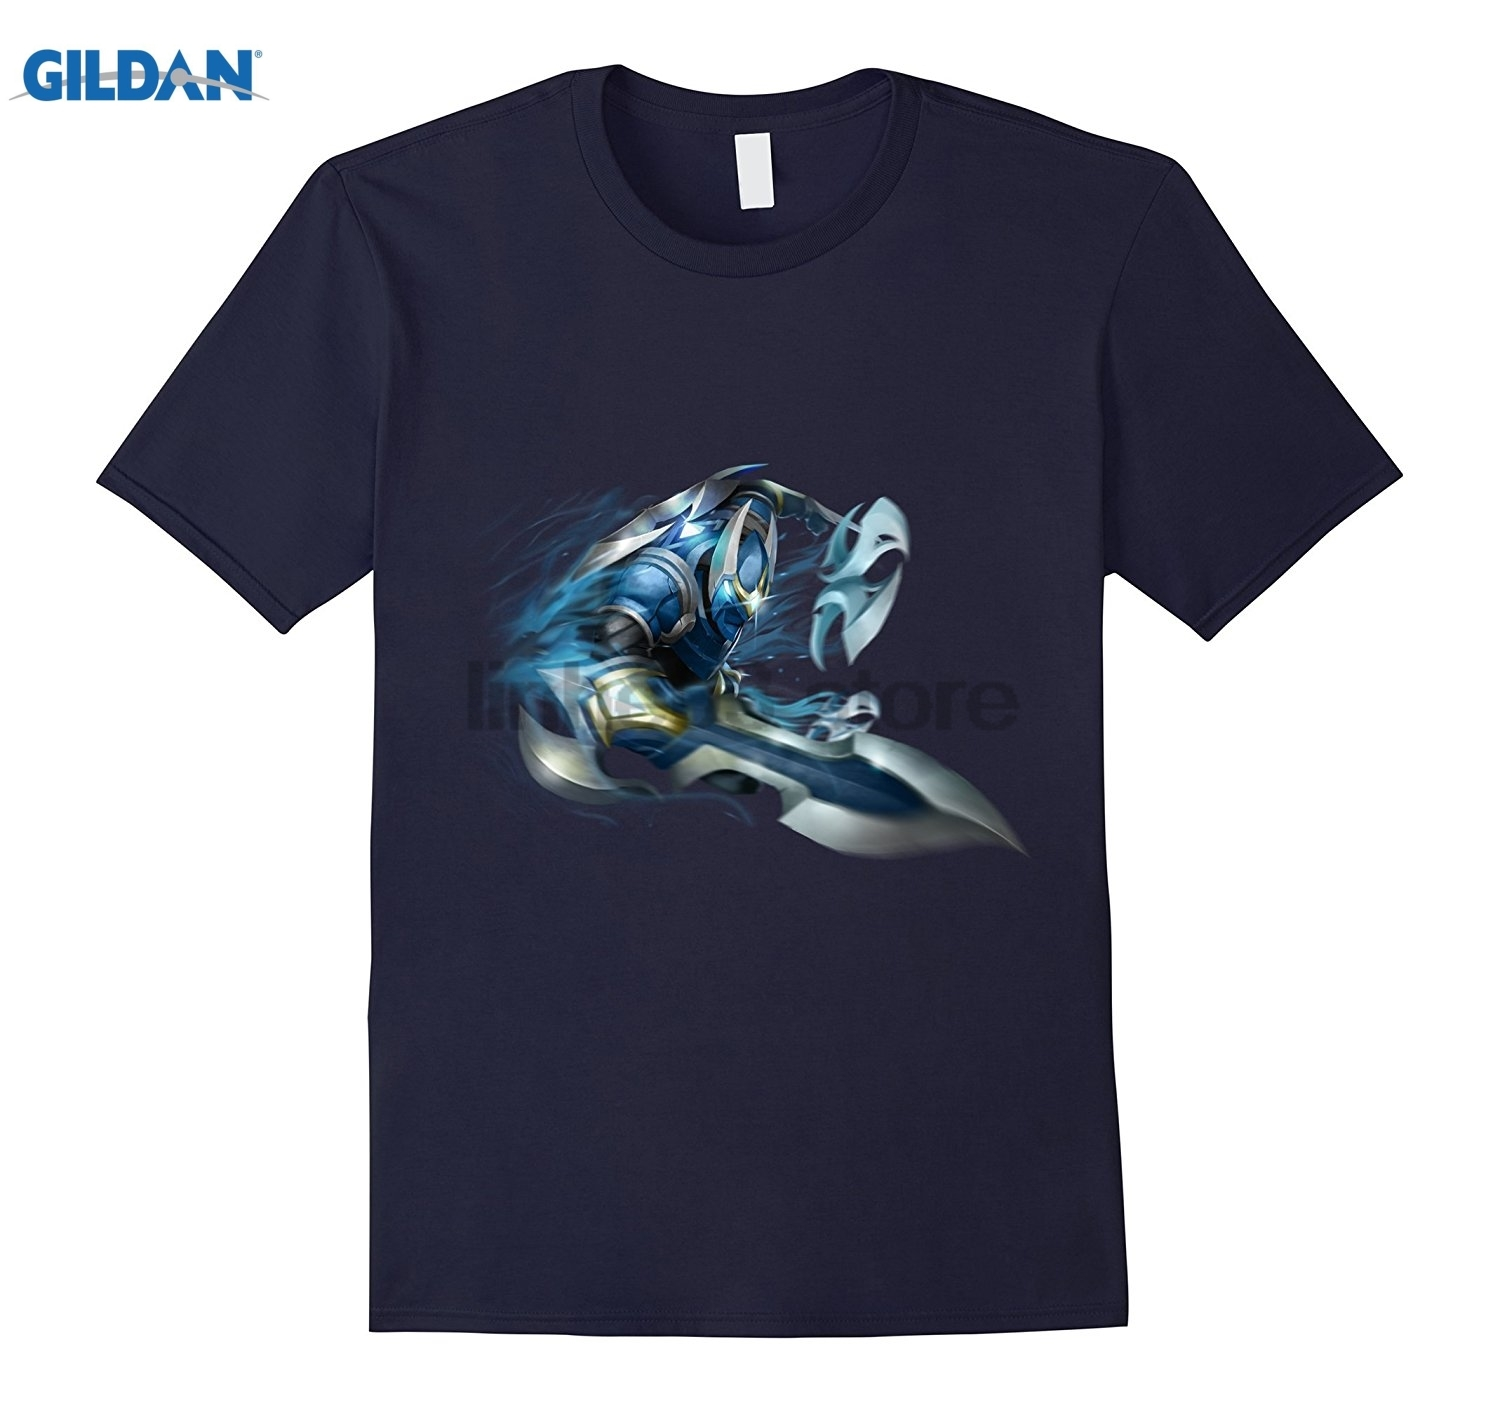 GILDAN Zed League Championship Shirt Dress female T-shirt Mothers Day Ms. T-shirt